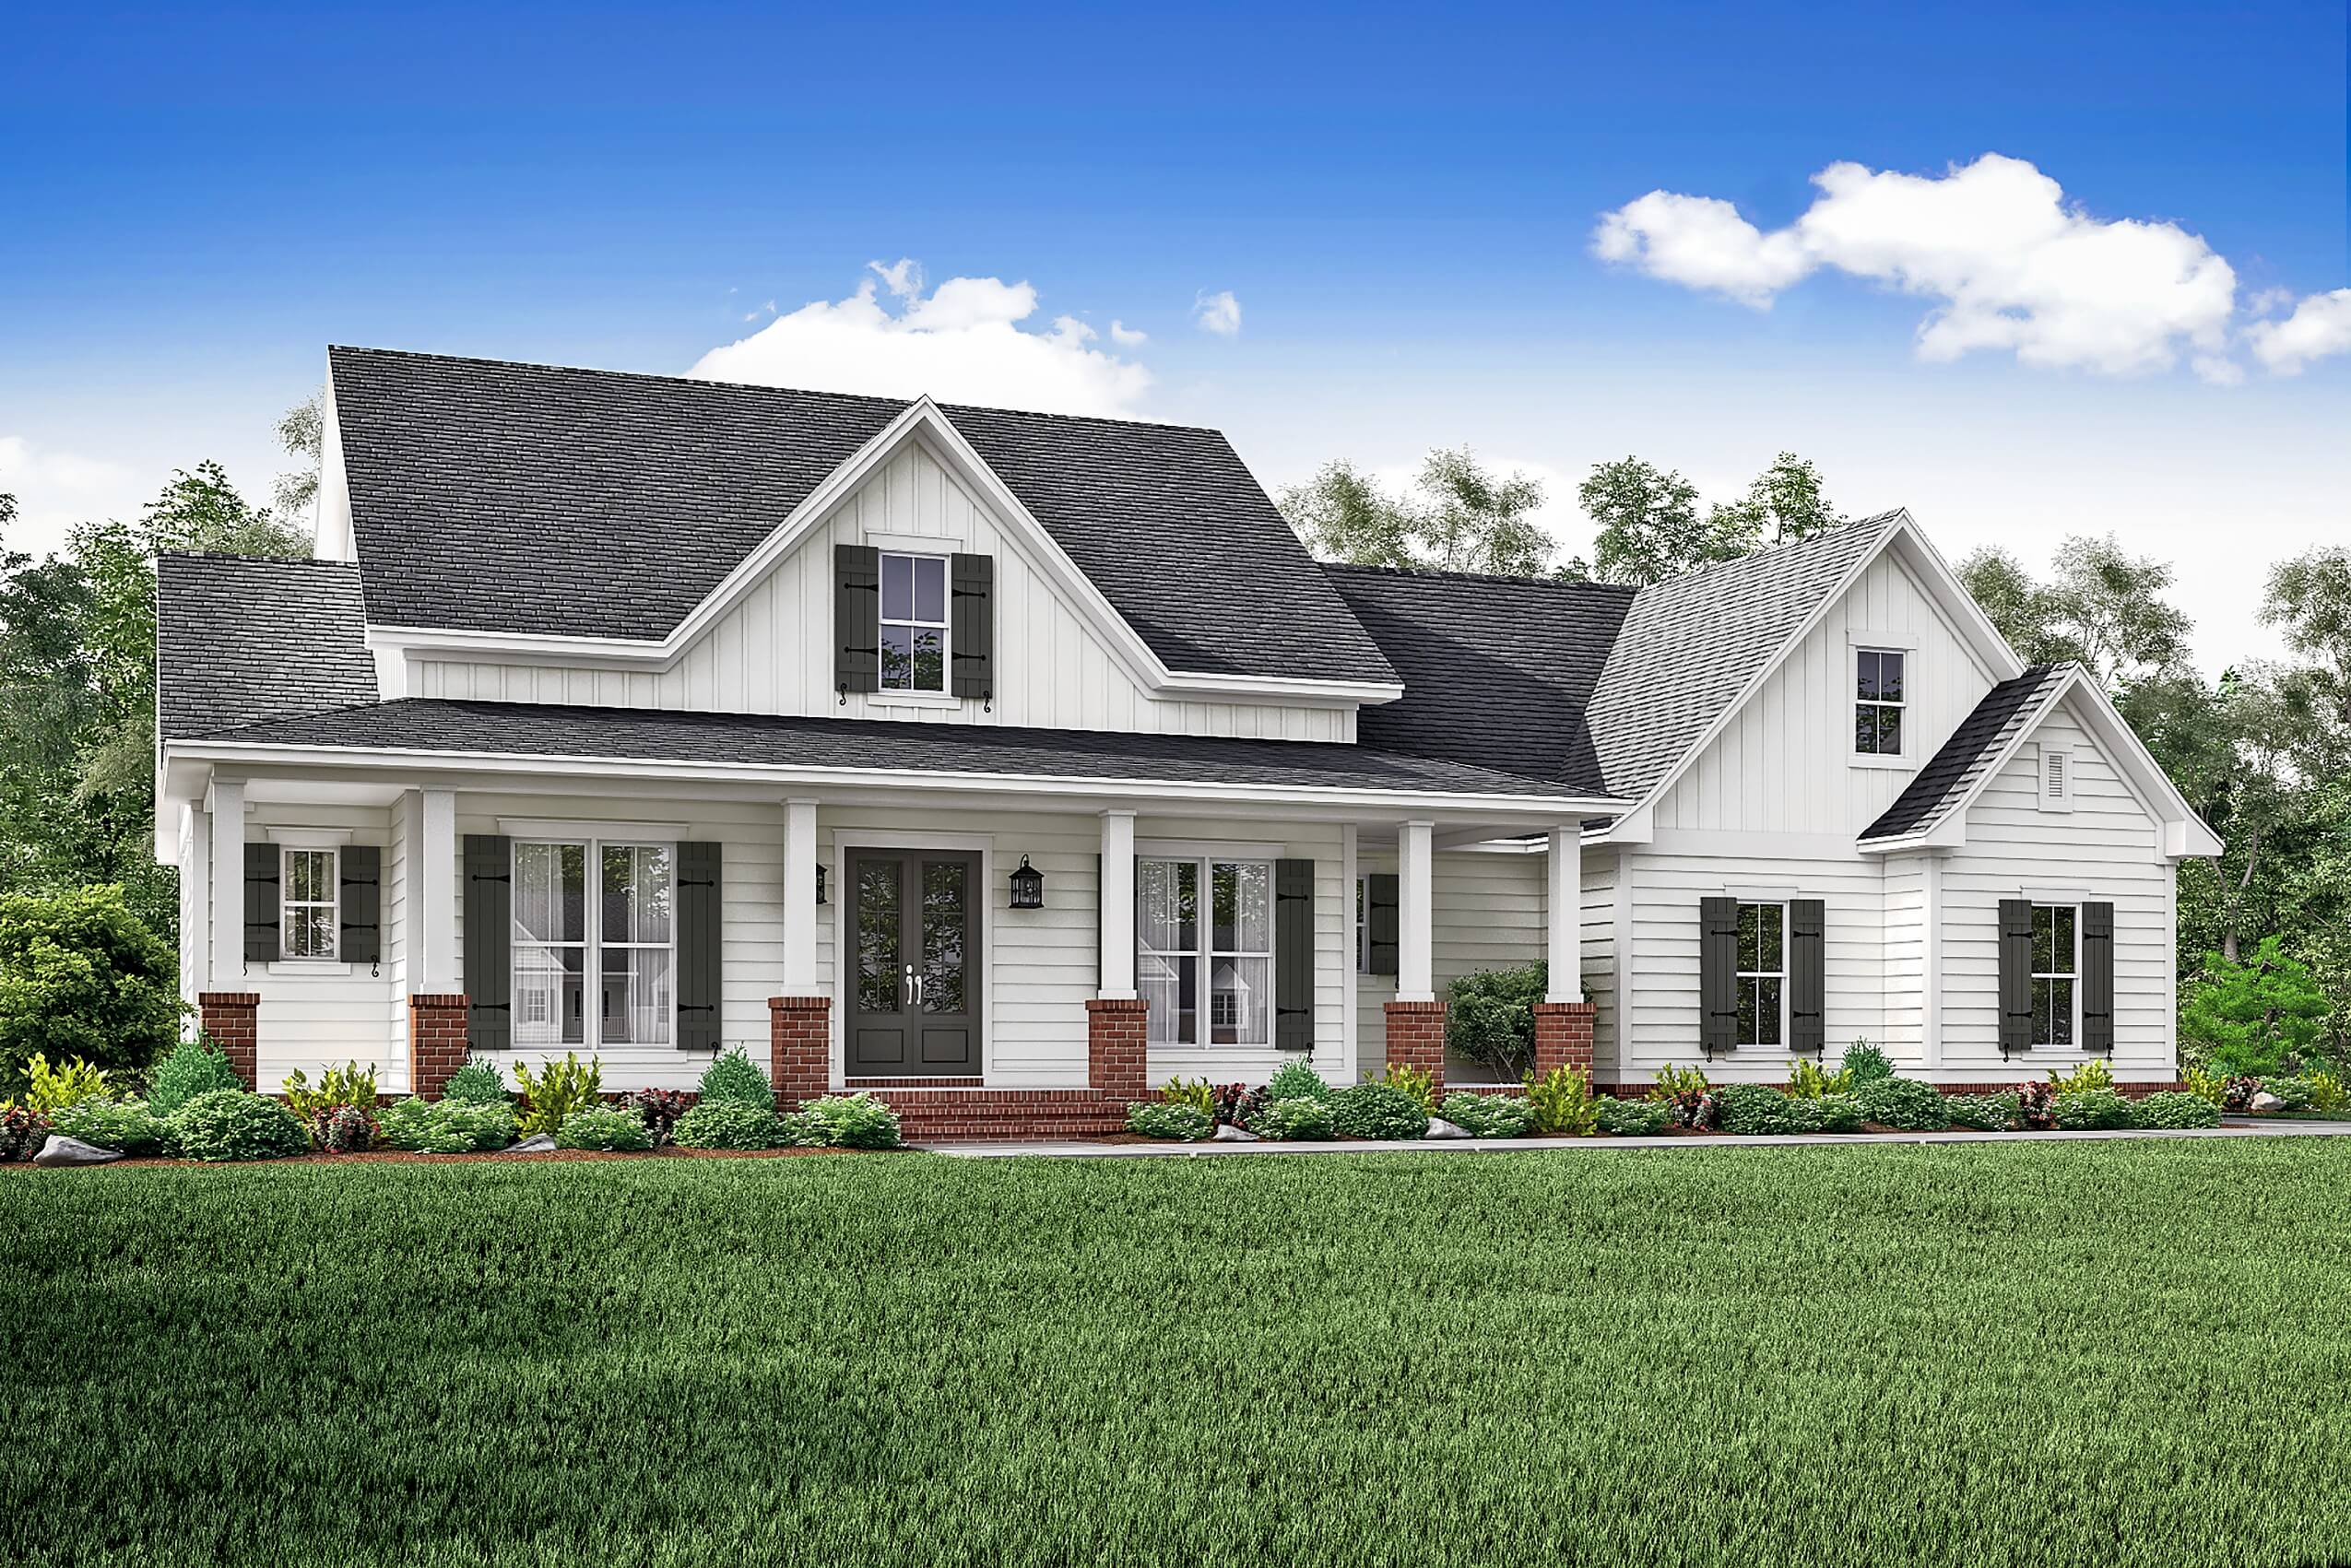 3 bedrm 2466 sq ft country house plan 142 1166 for Modern farmhouse style